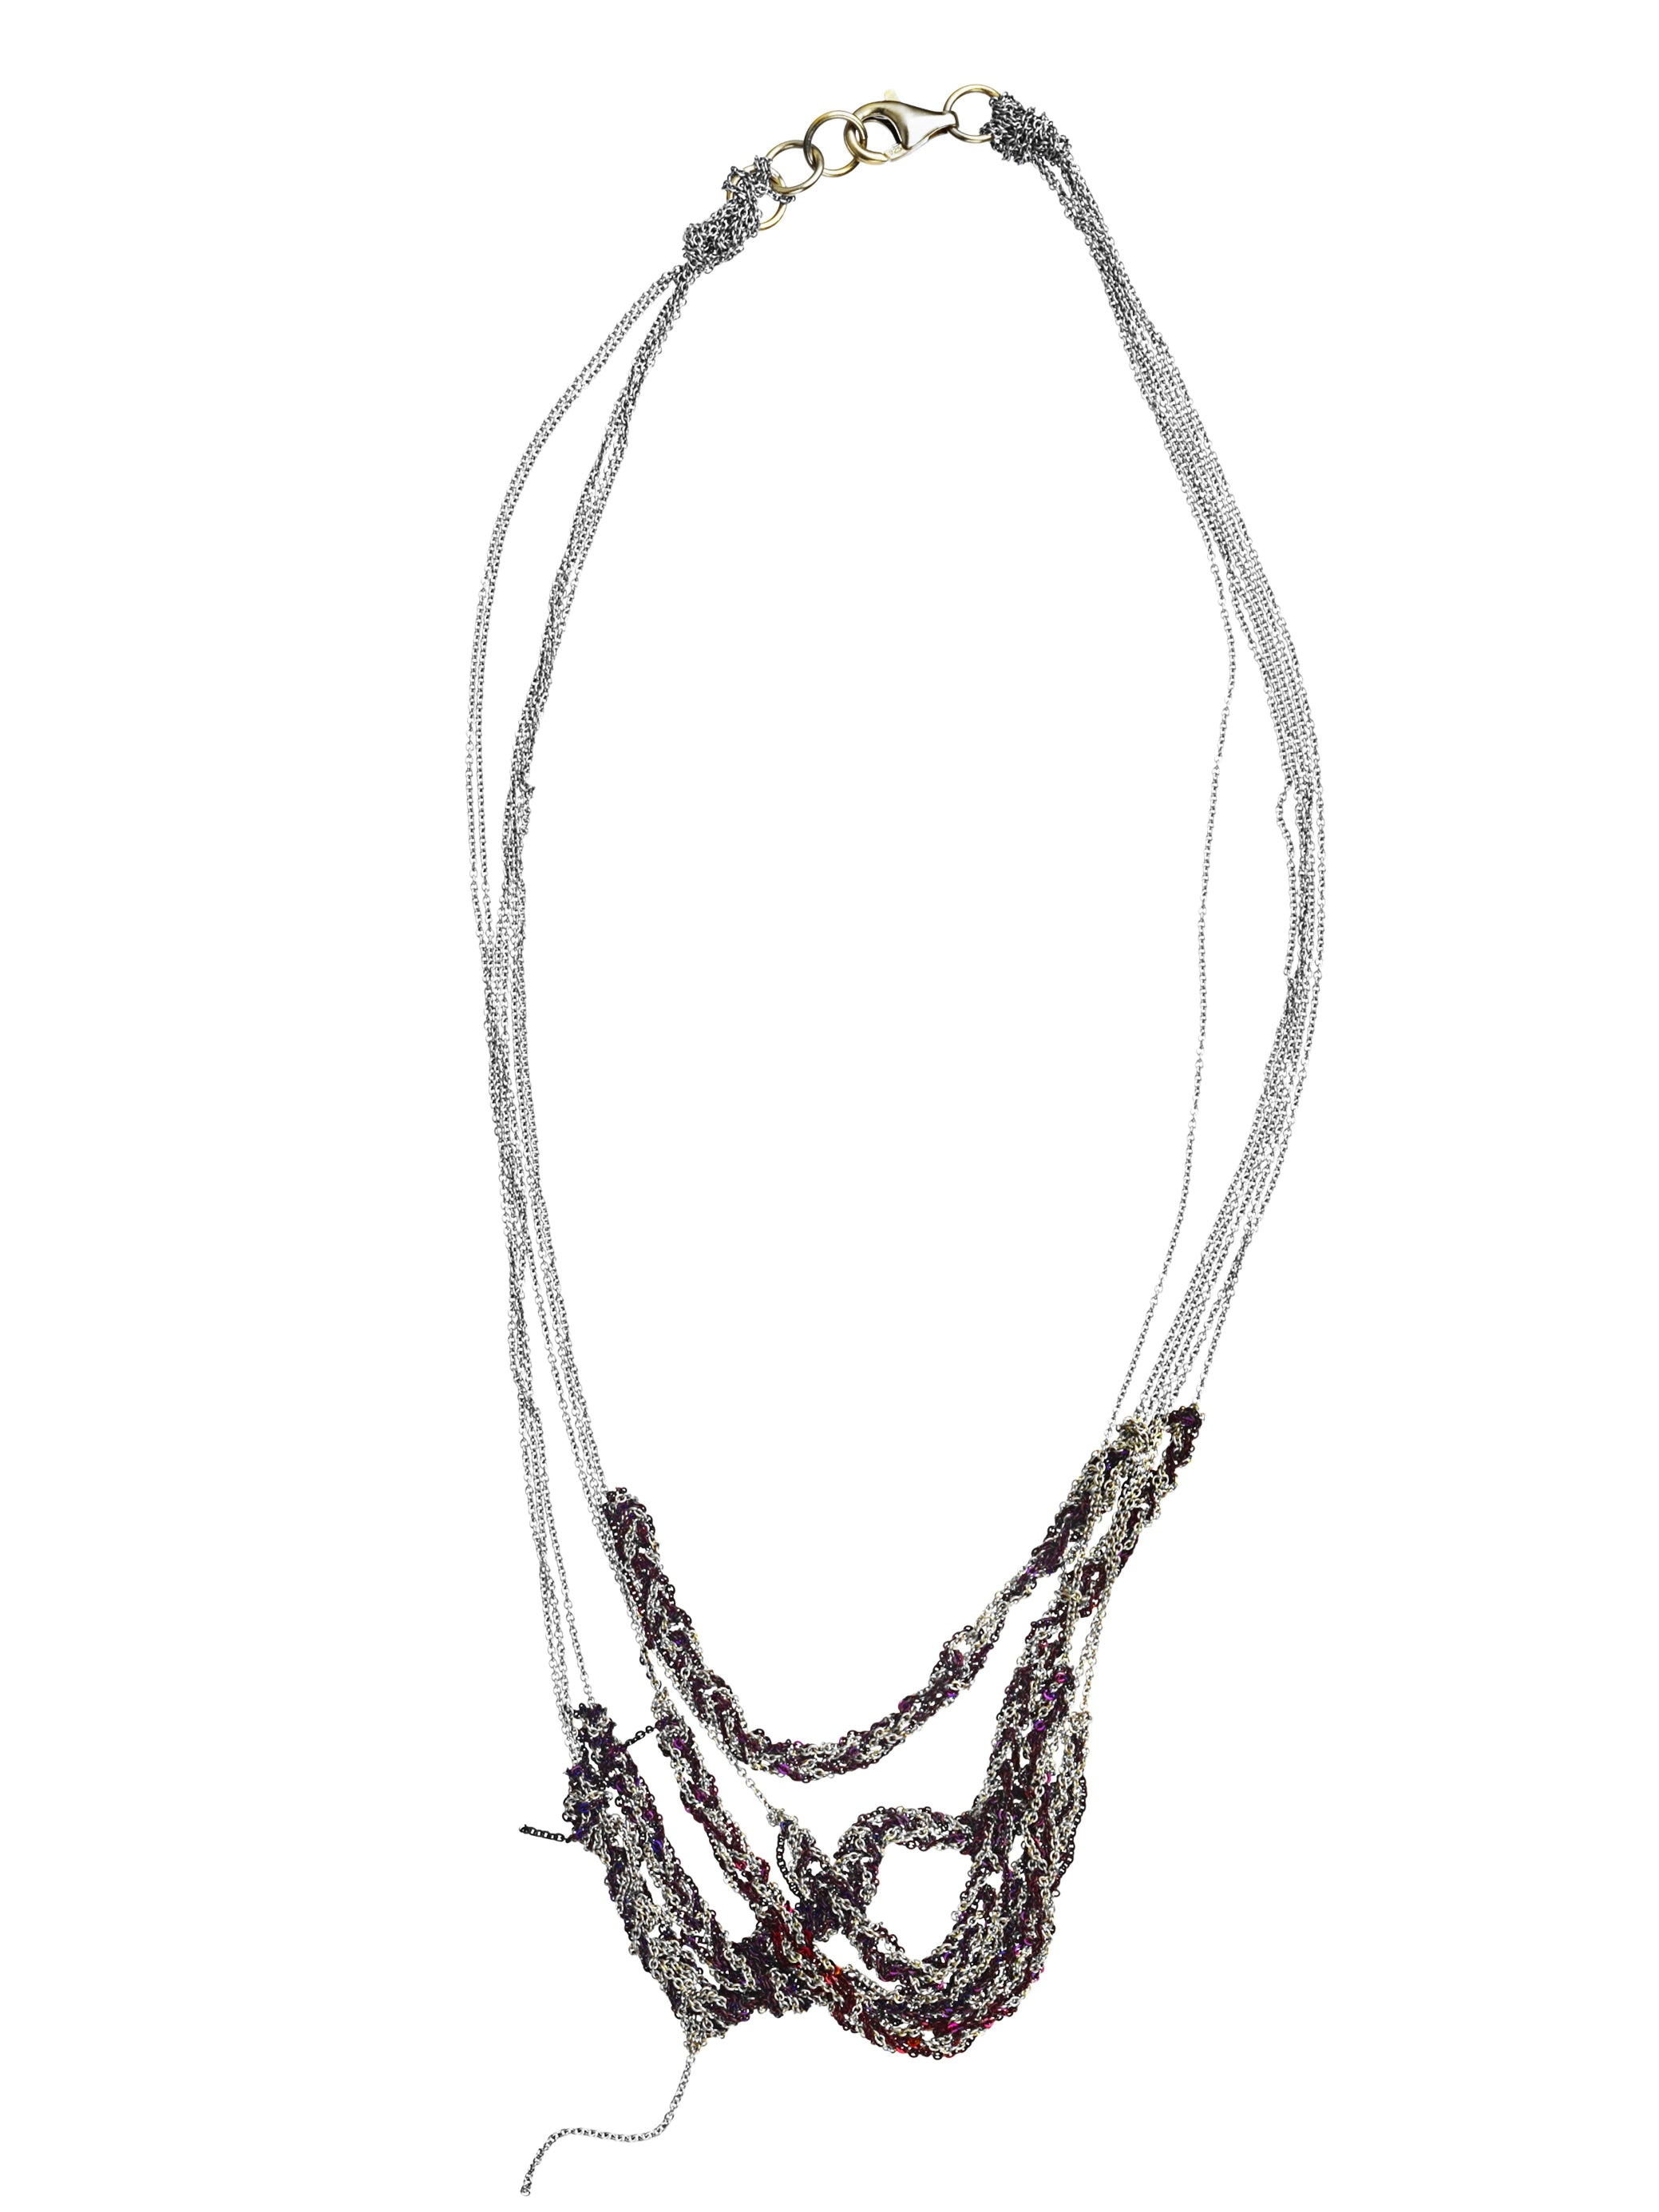 5-Tiered Bare Chain in Ash + Plum